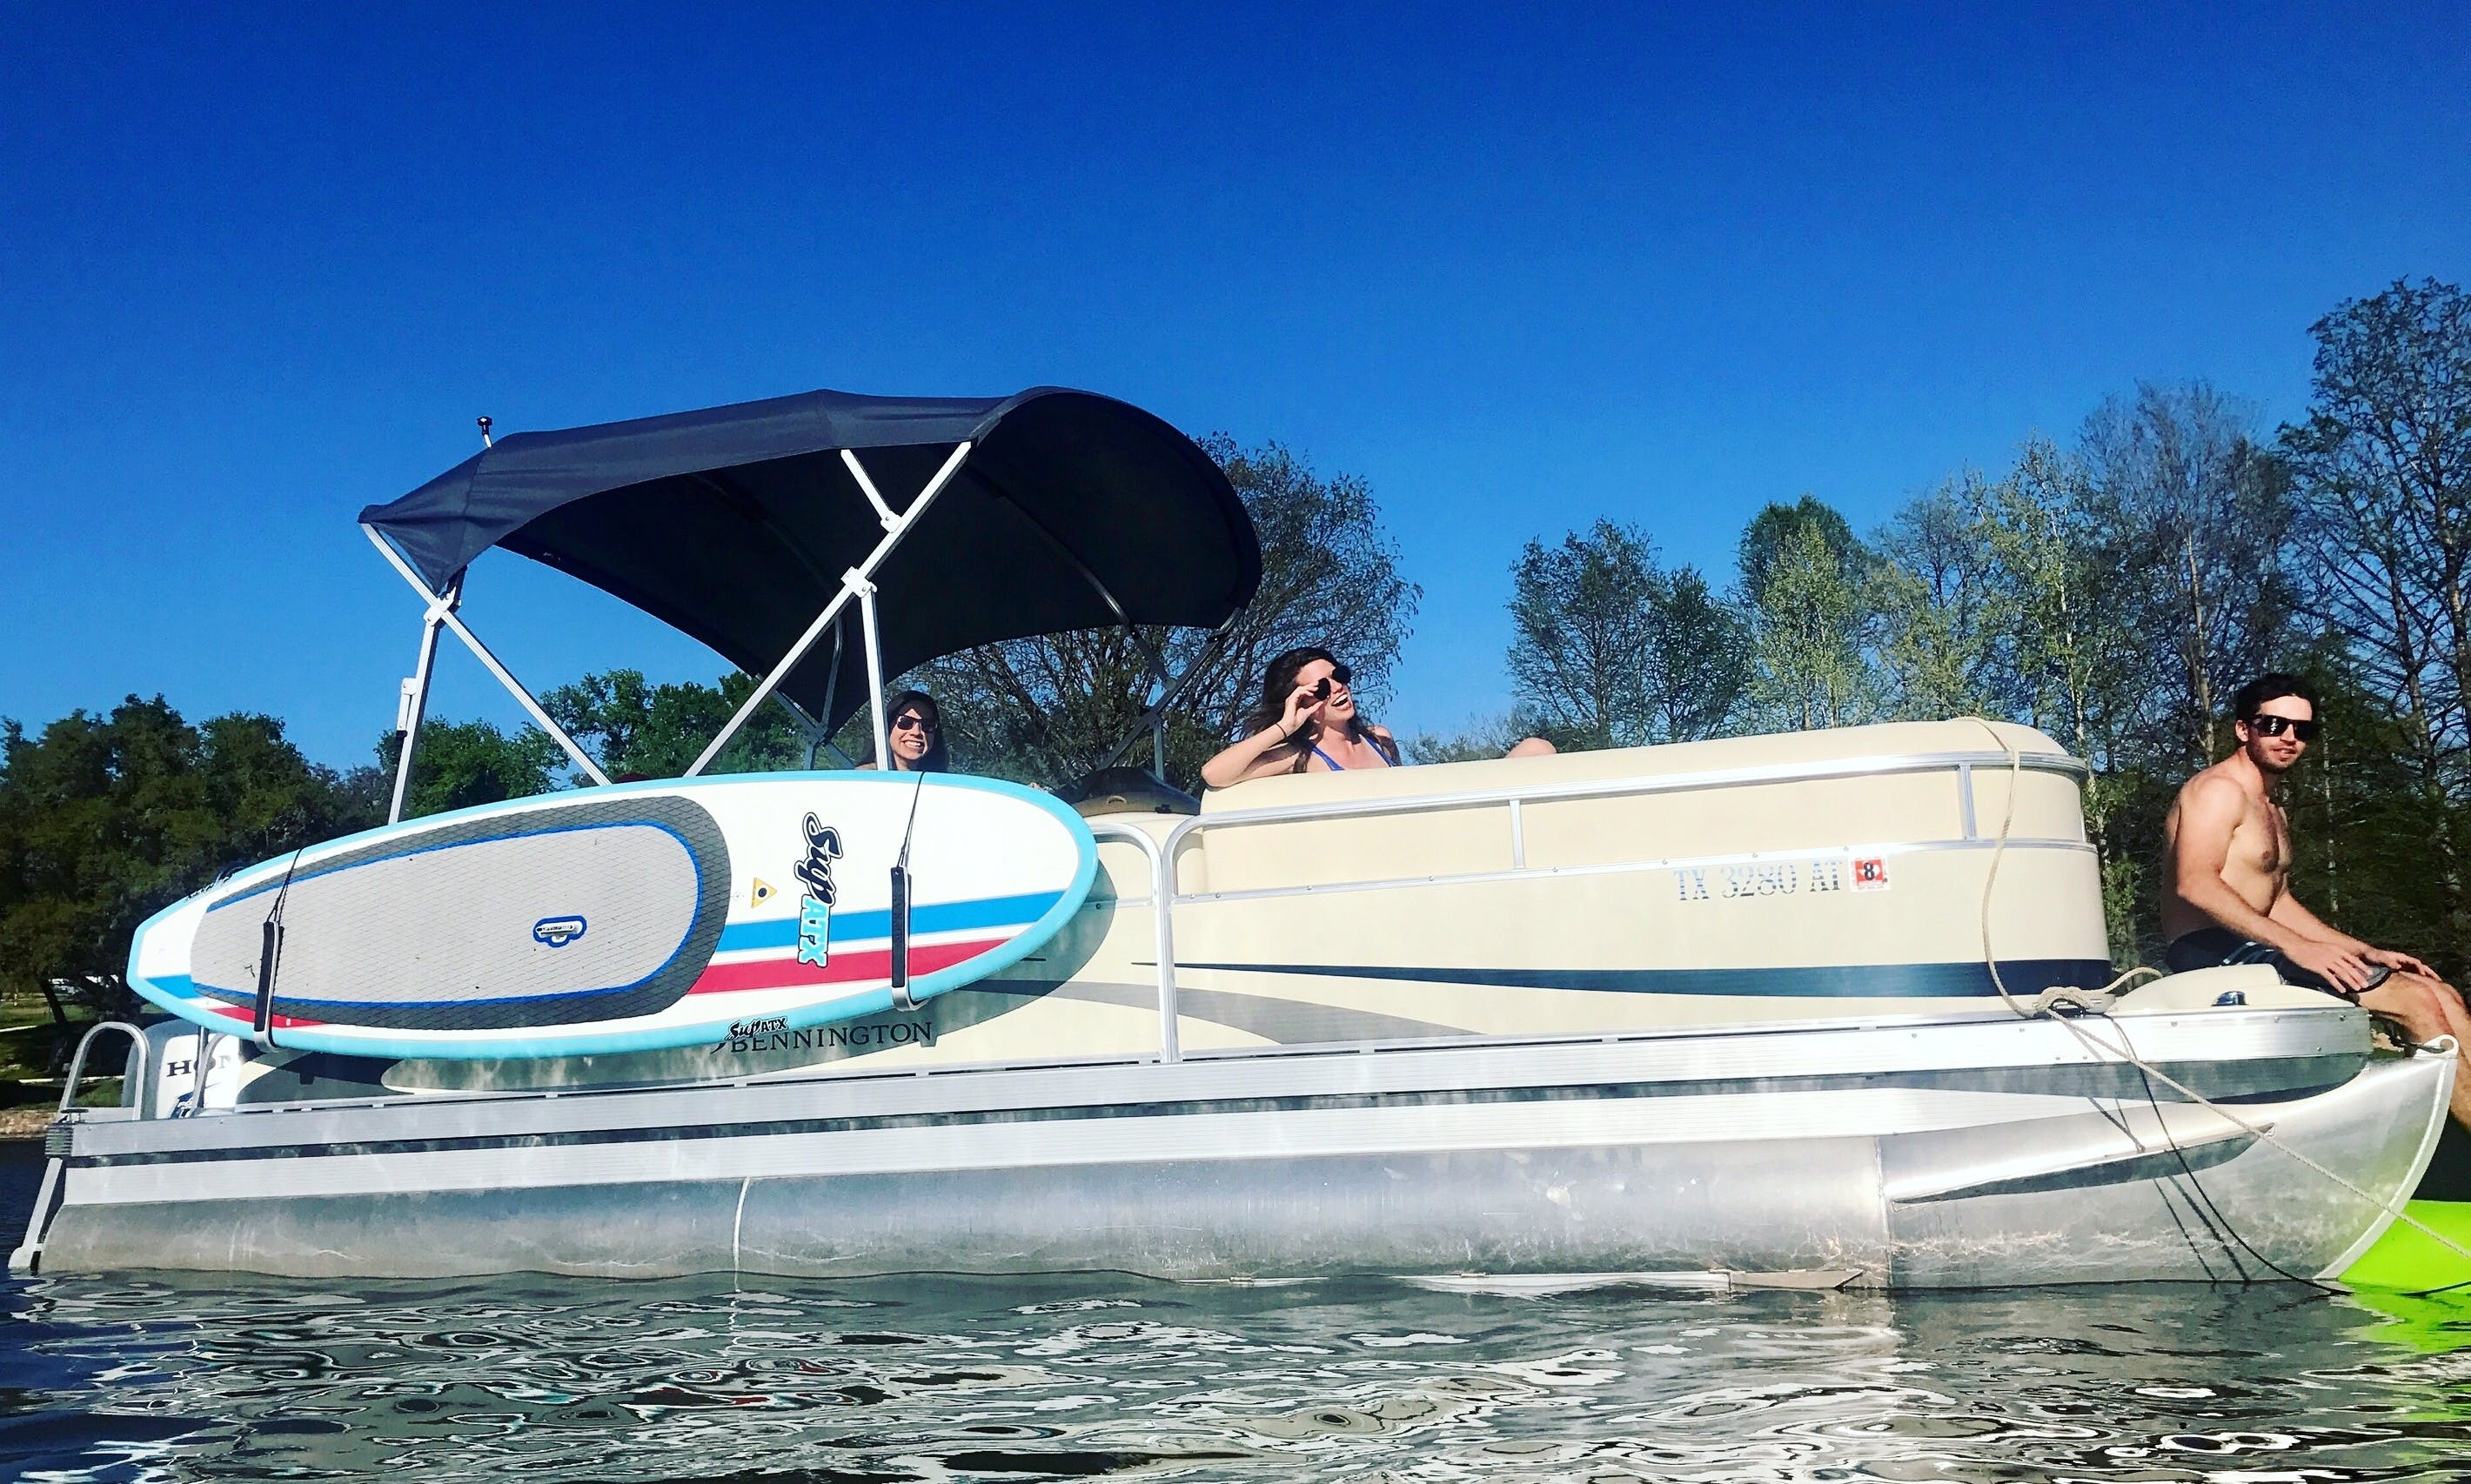 Experience Lake Austin on 23' Bennington Pontoon with Captain Cole